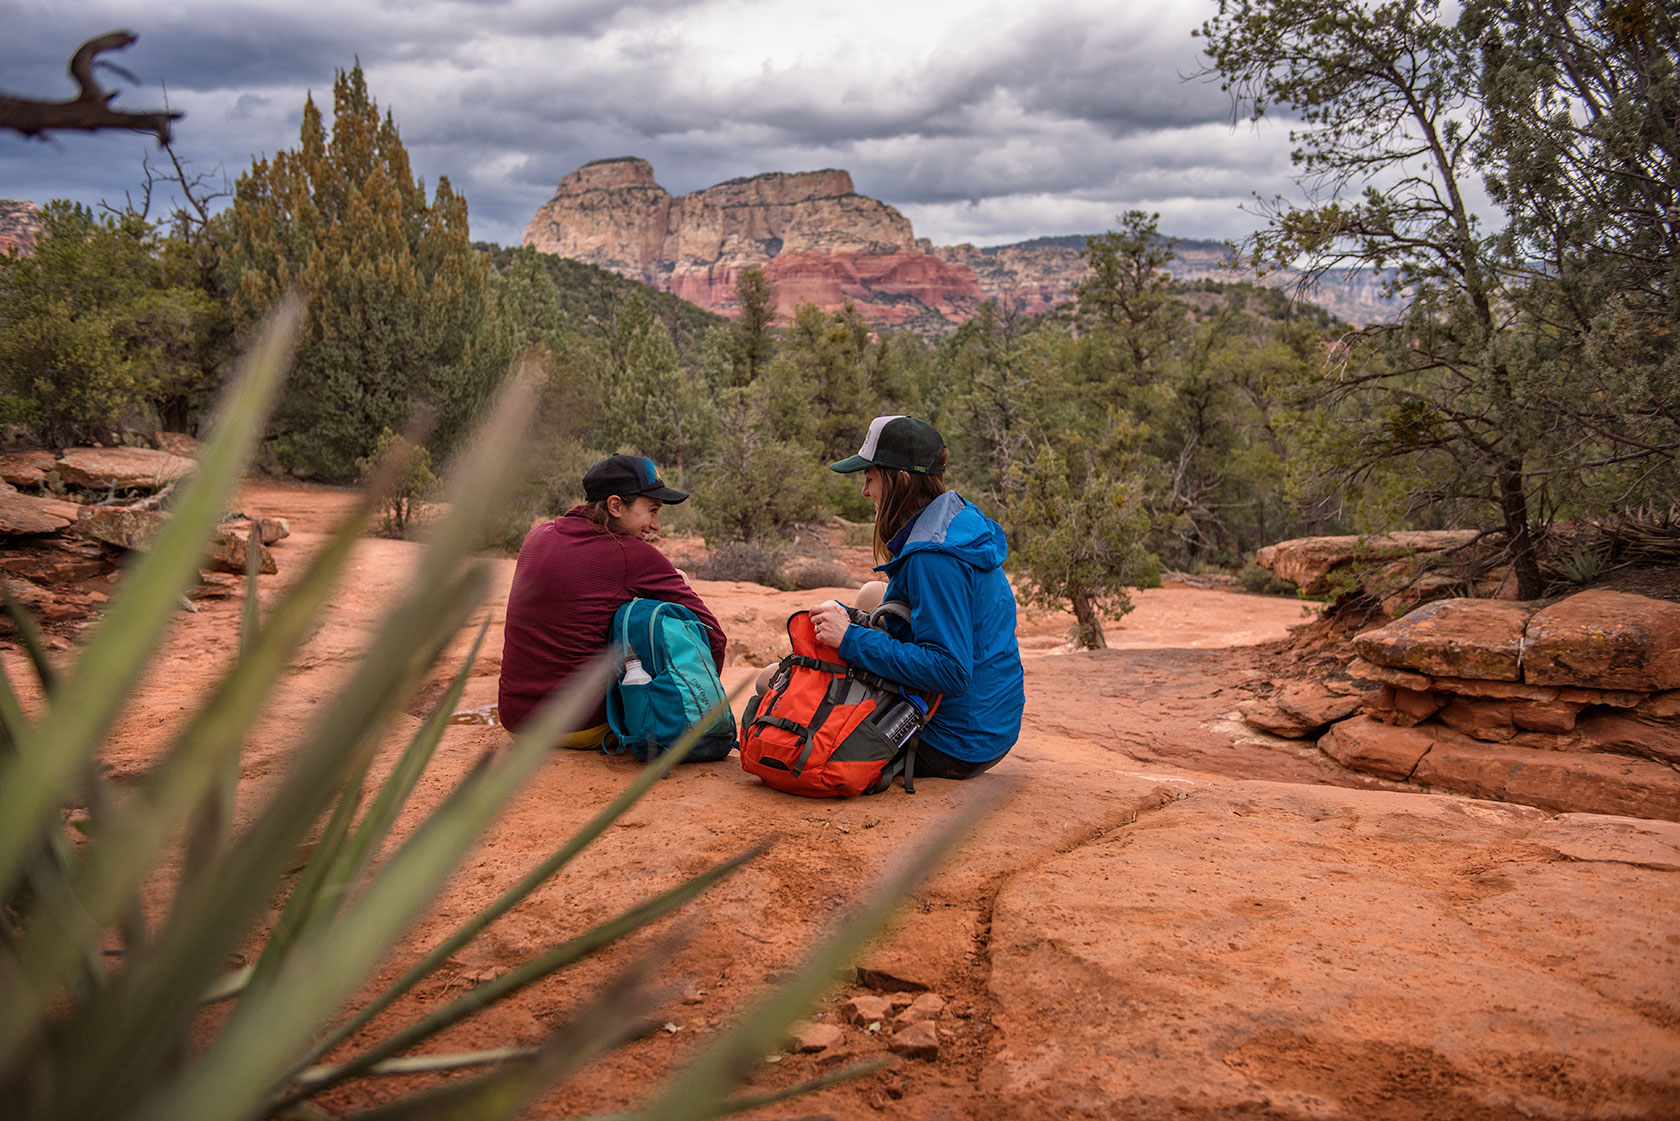 austin-trigg-patagonia-day-pack-arizona-sedona-desert-lifestle-product-backpack-adventure-hiking-weather-clouds-canyon.jpg